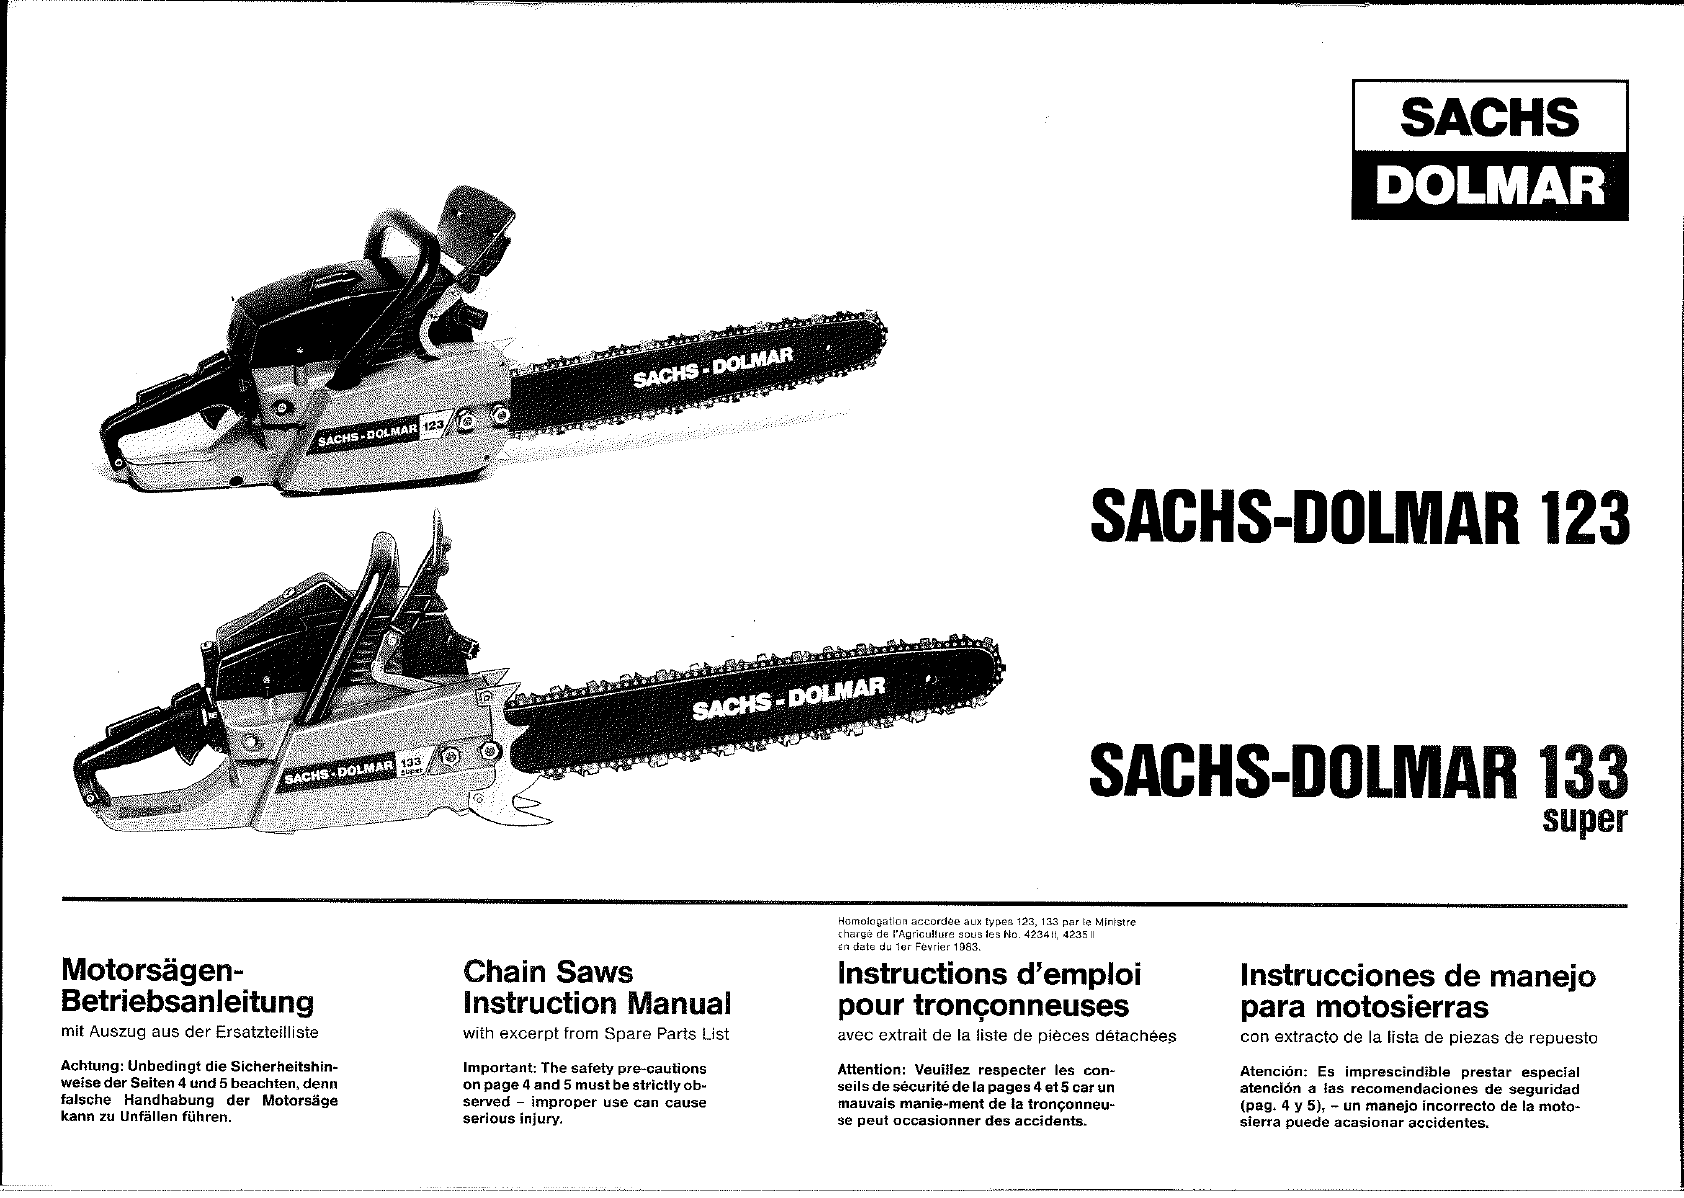 Manual Sachs Dolmar 133 Super (page 1 of 12) (German